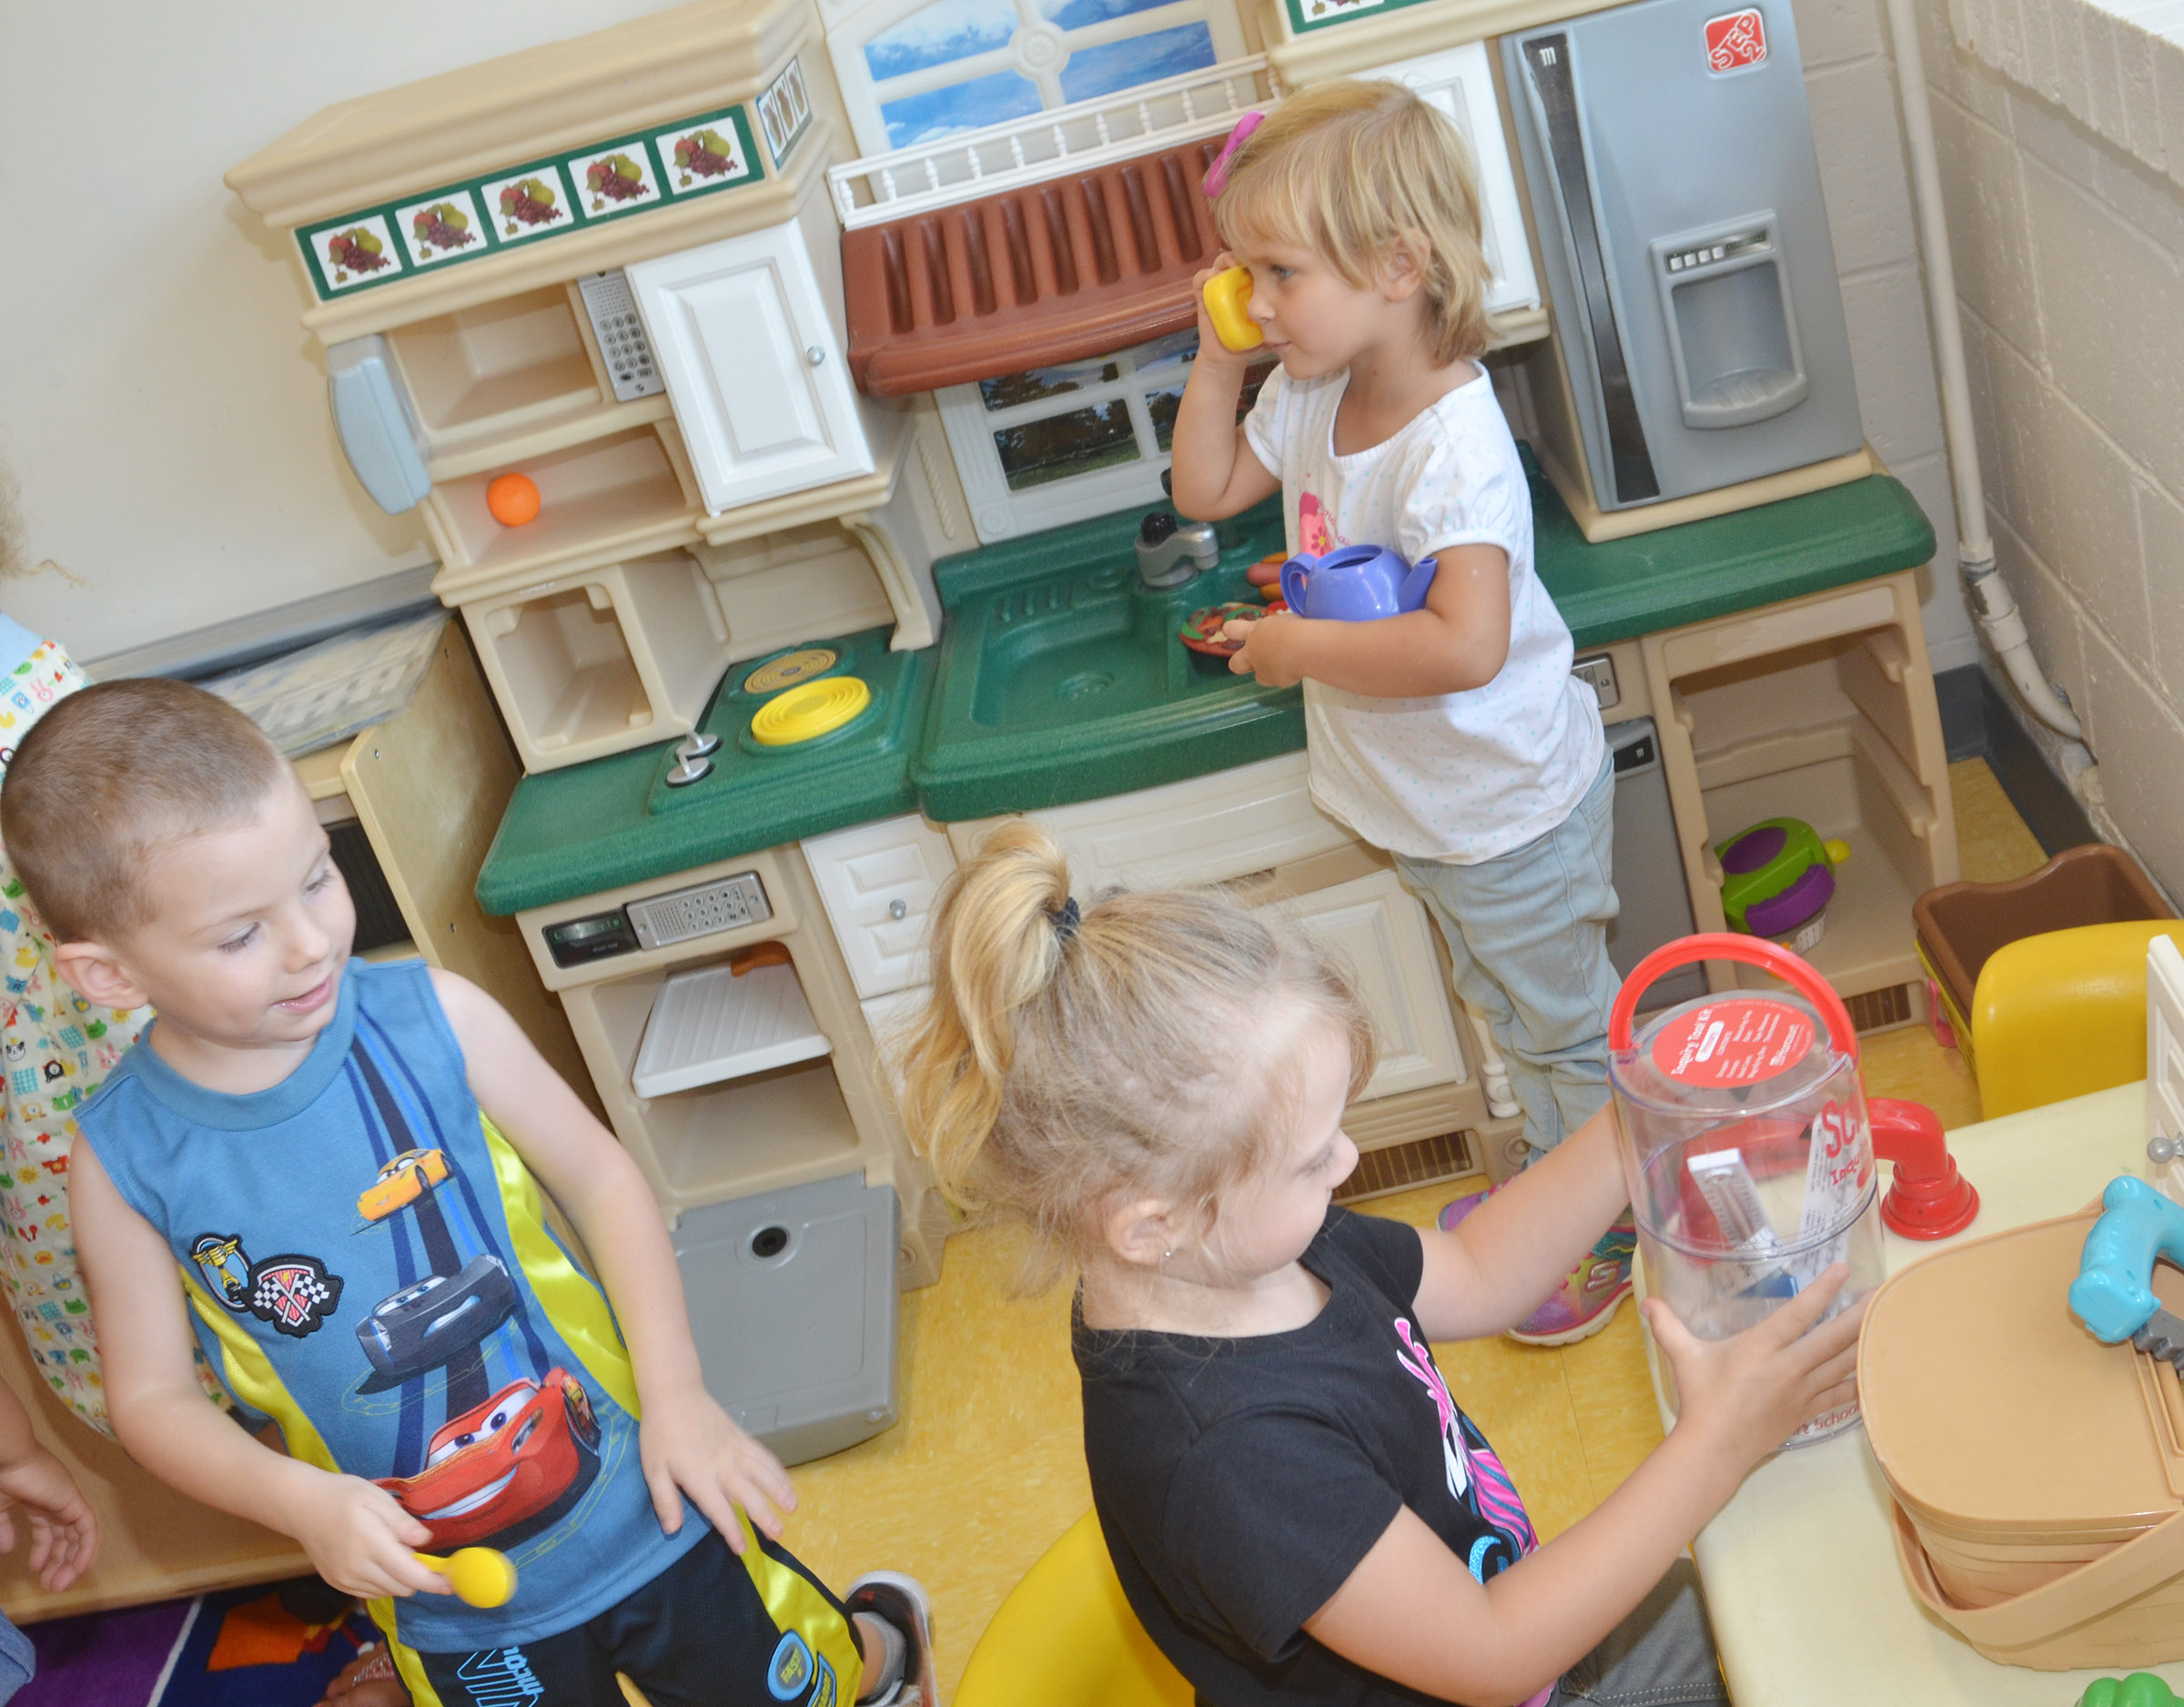 From left, CES preschool students Chase Arnett, Aubree Hall and Elliana Morton play together.